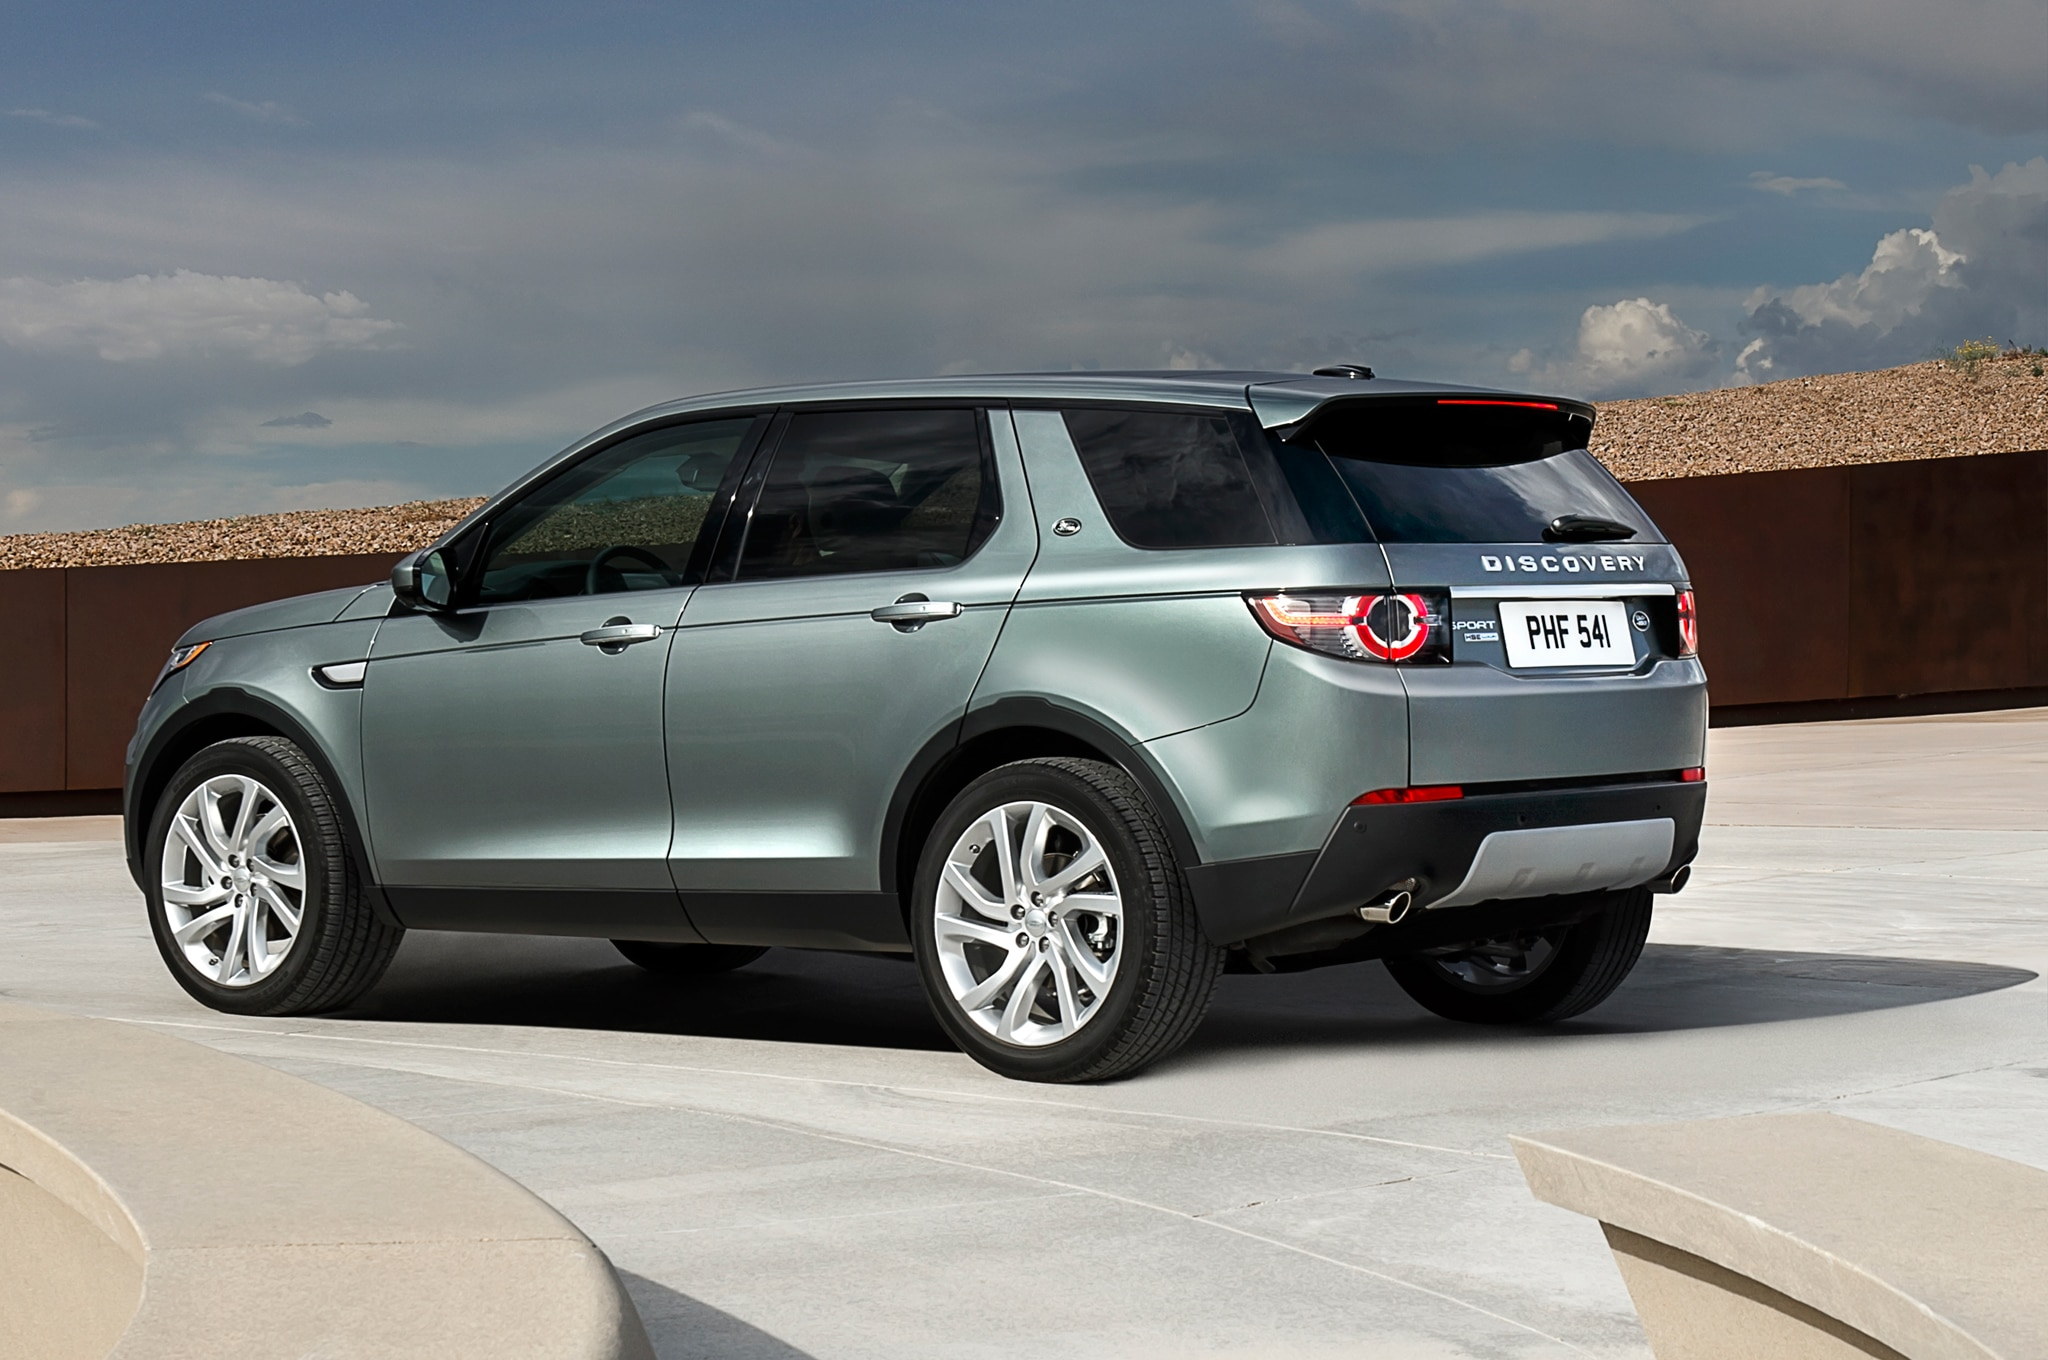 https://st.automobilemag.com/uploads/sites/11/2015/01/2015-Land-Rover-Discovery-Sport-rear-three-quarter1.jpg